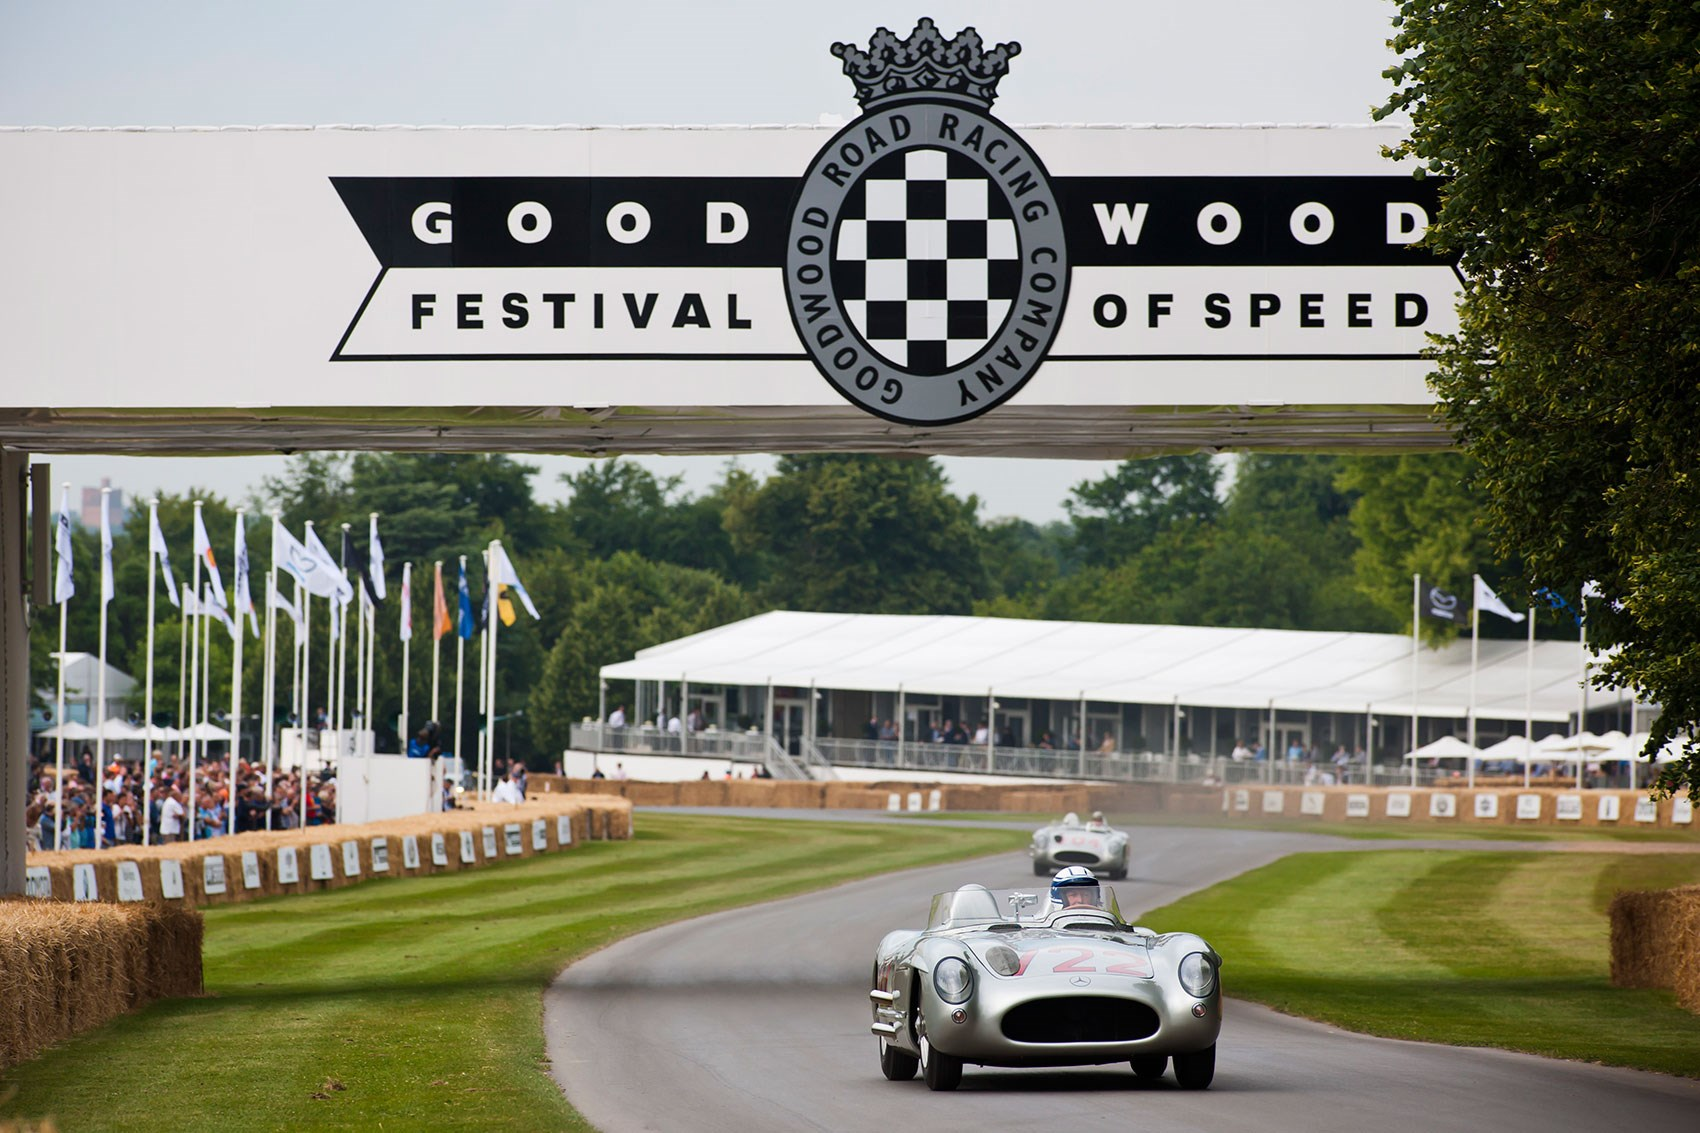 Festival Of Speed >> Goodwood Festival Of Speed 2017 New Car Launches To Be Unveiled